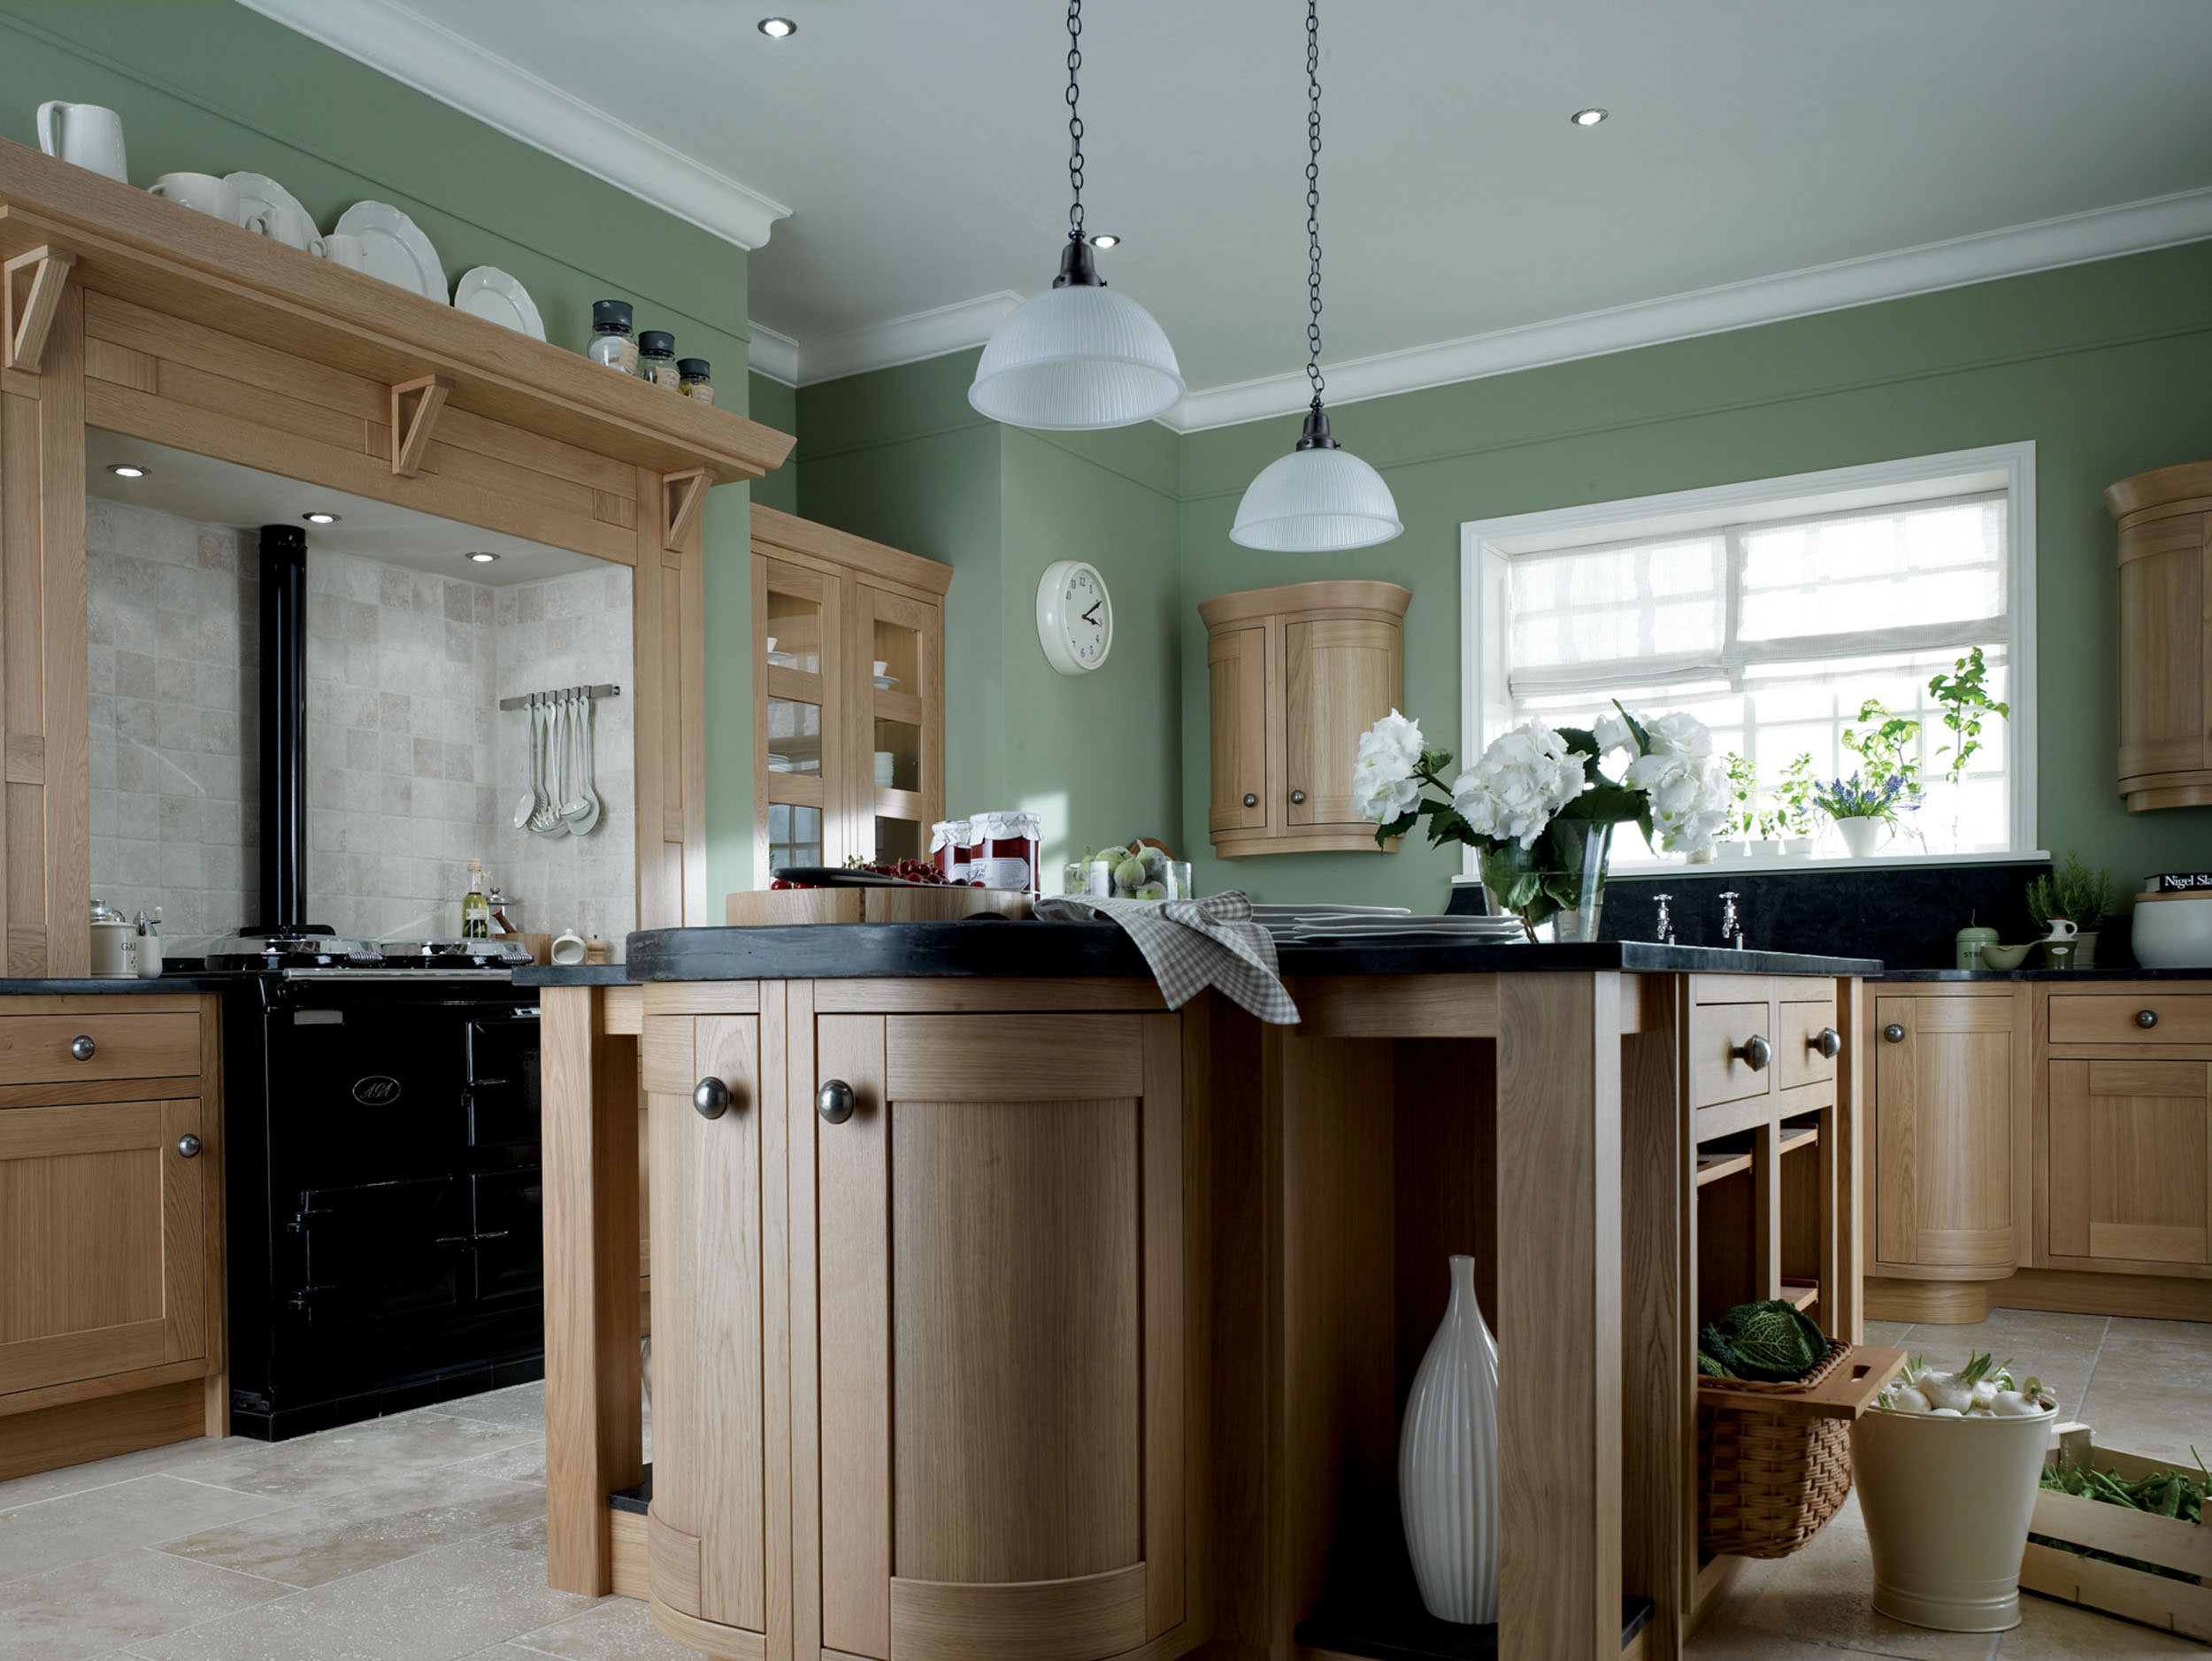 Wooden Kitchen Image With Beautiful Green Wall Aint And Casual Lamps.  Choosing Color Painting ... Part 98